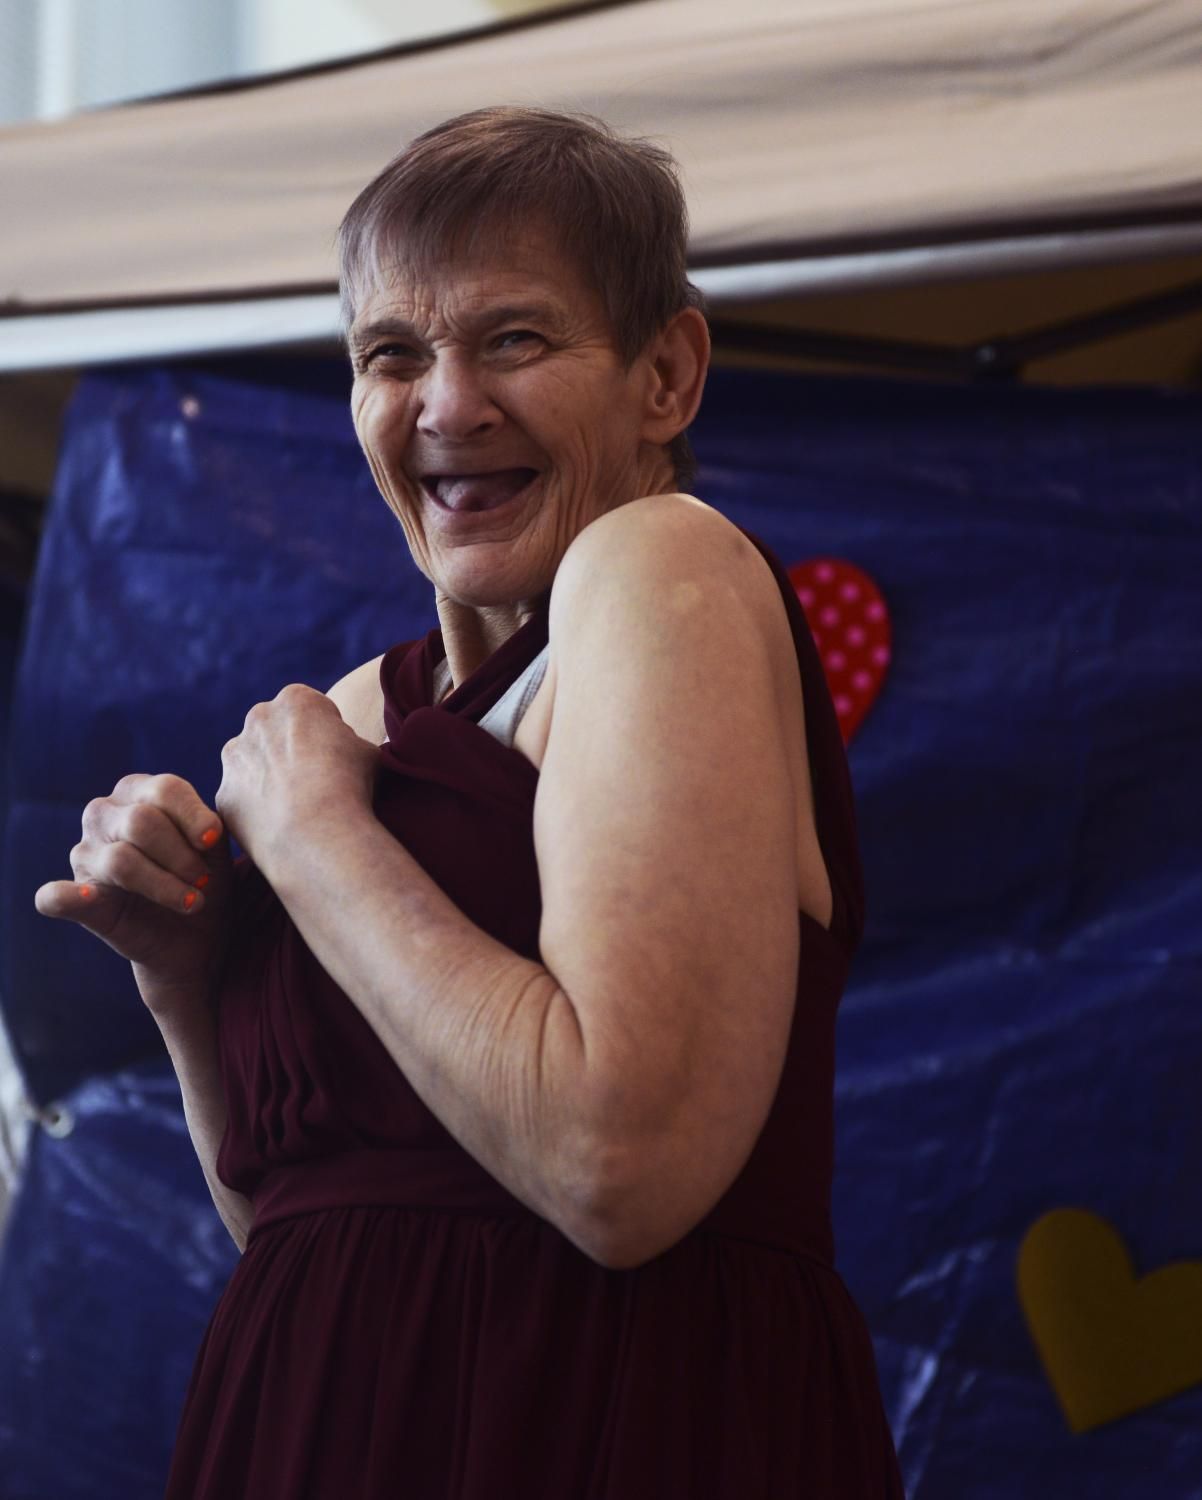 """Joyce Sims tries on a maroon gown at the """"Say Yes to the Dress"""" event on Saturday, Jan. 25, 2020, at the Activities and Recreation Center. Sims was overwhelmed with excitement and screamed in joy as she walked out of the changing room."""